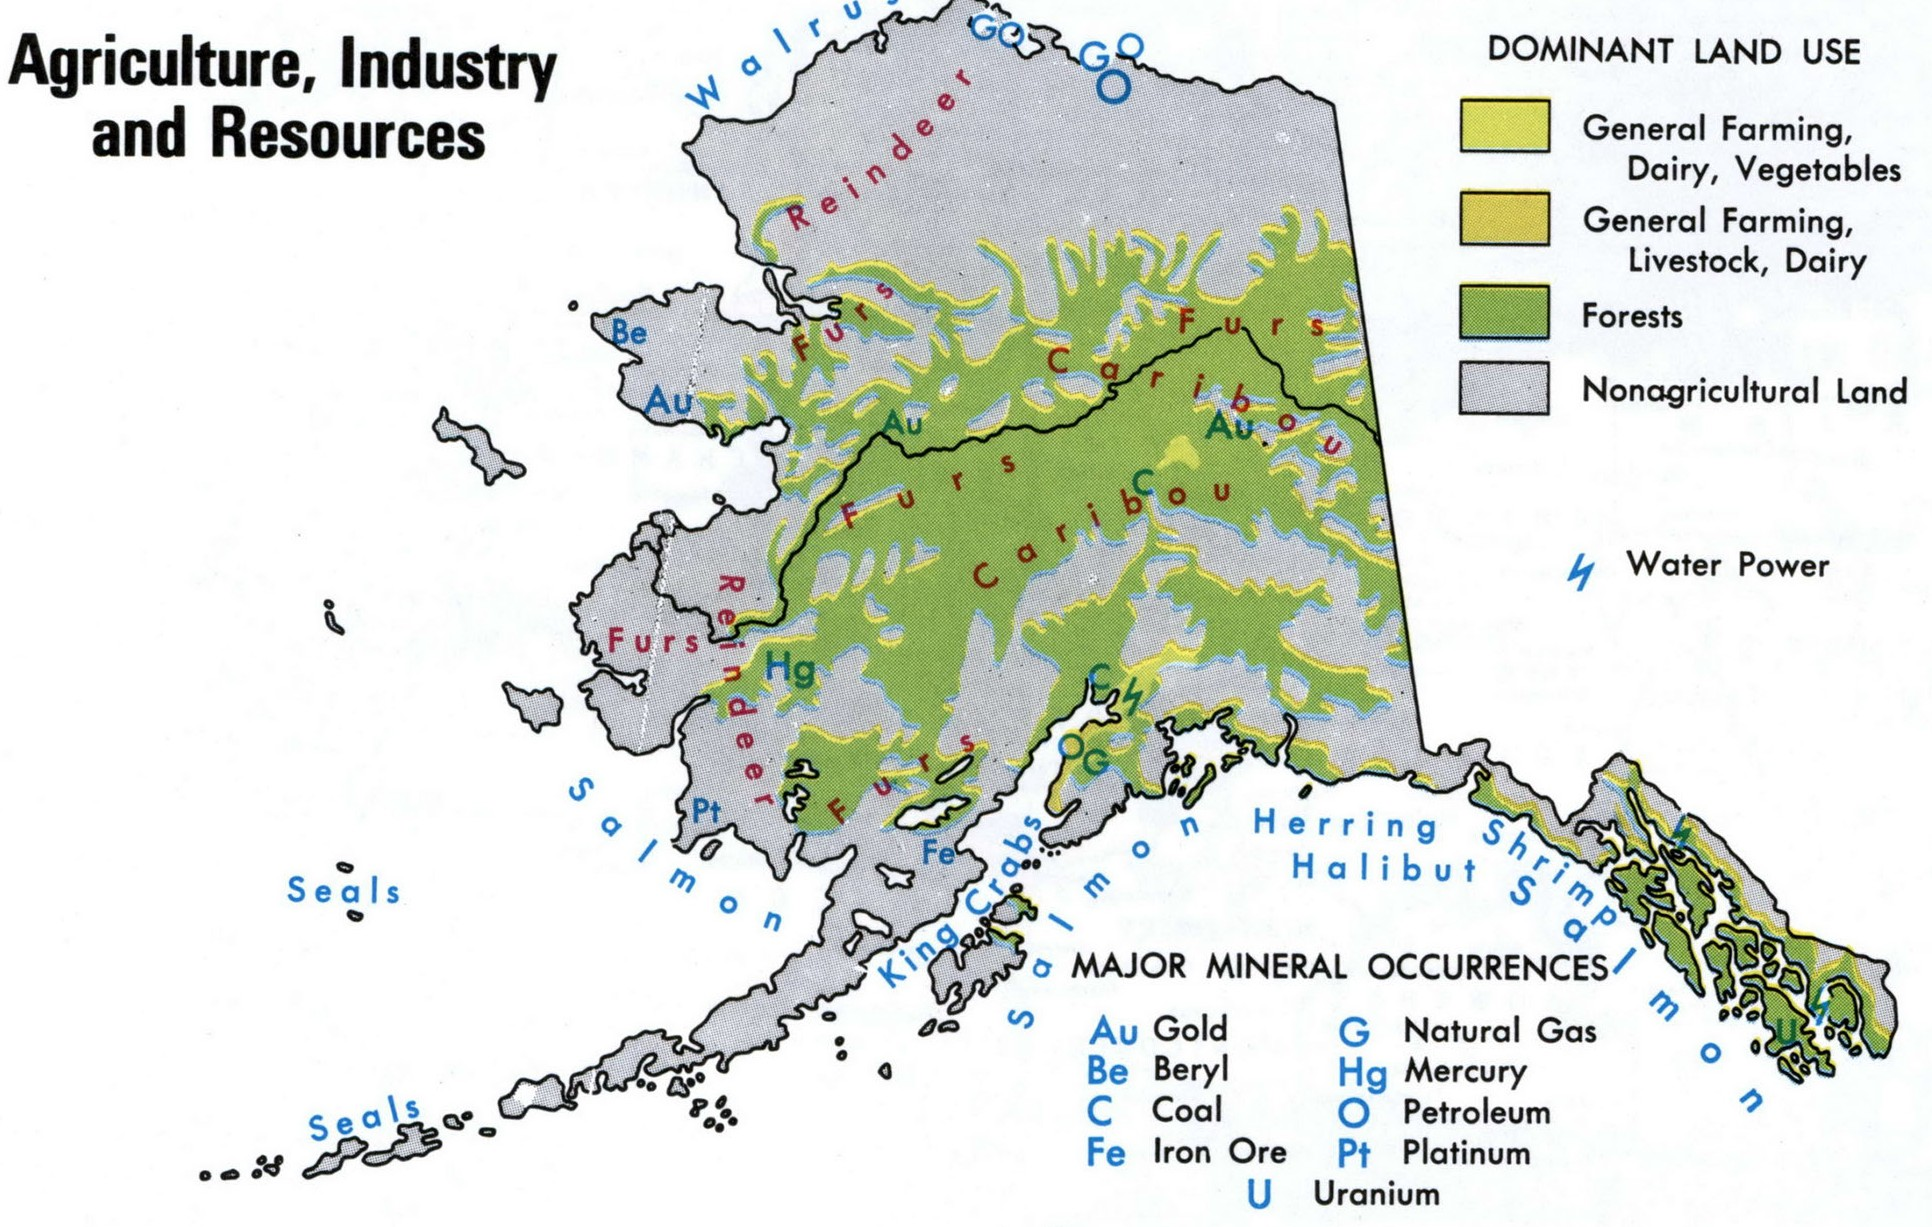 resources map of Alaska